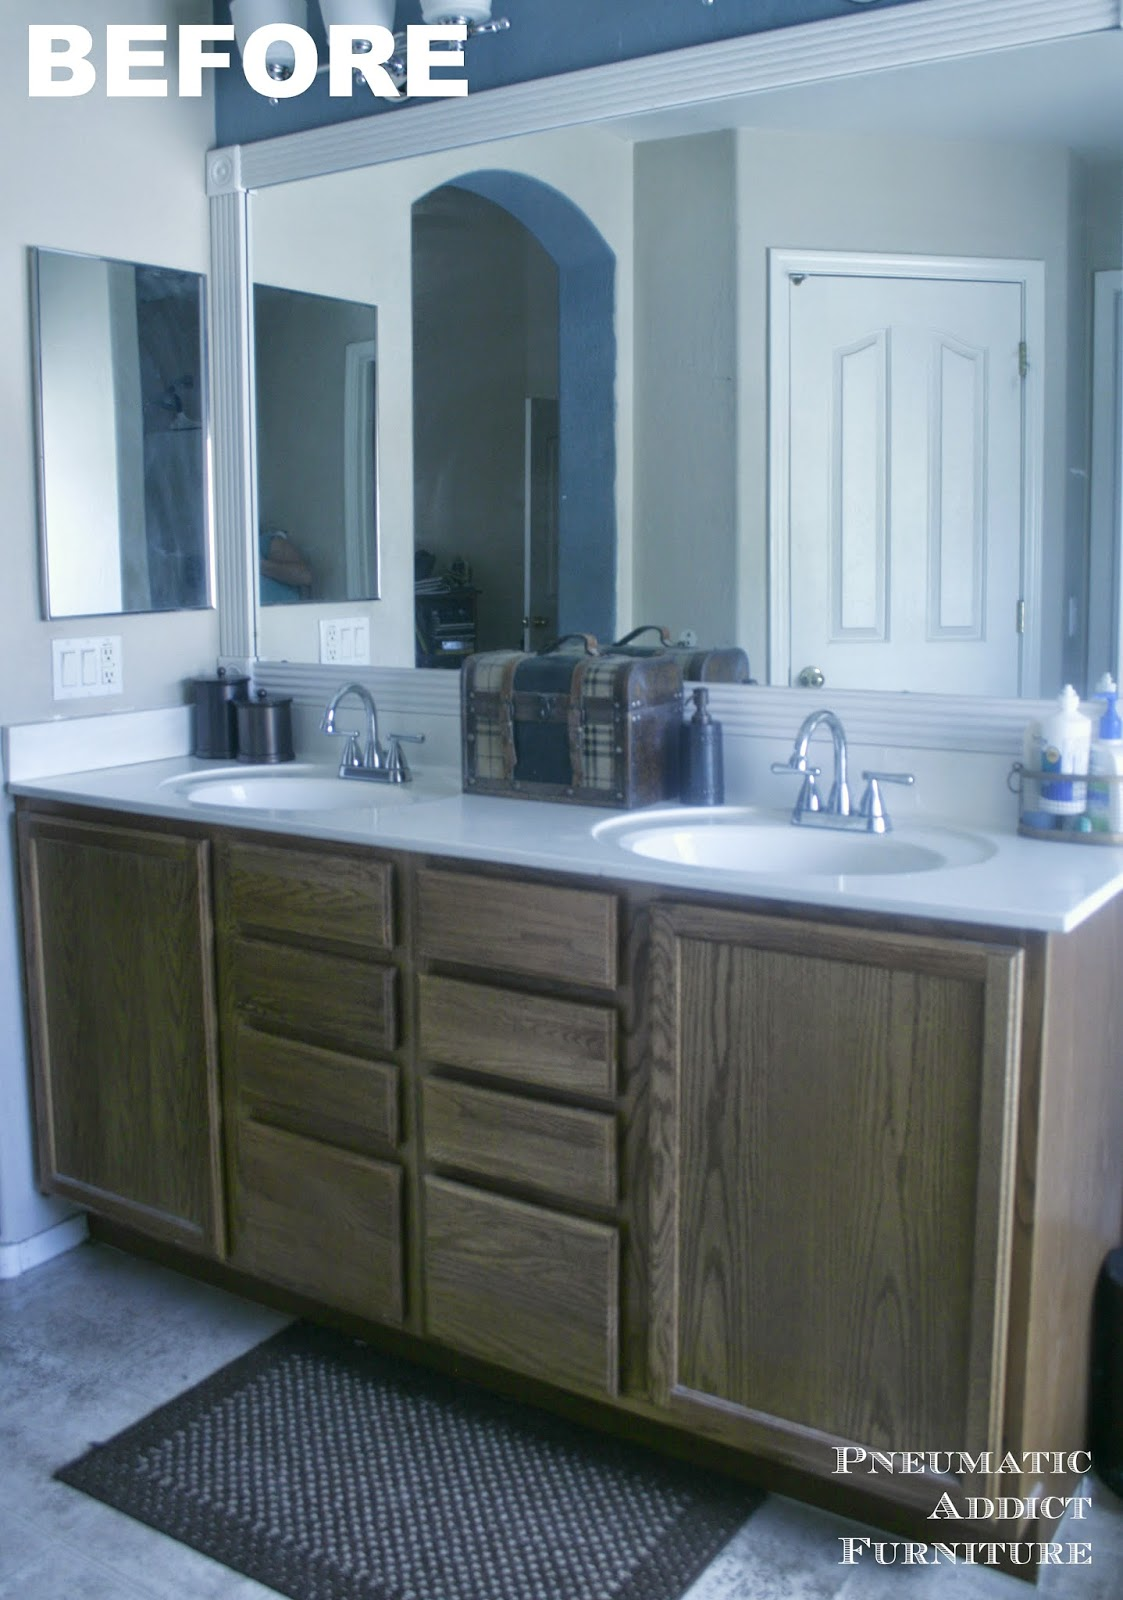 Darken Cabinets Without Stripping The Existing Finish Pneumatic Addict